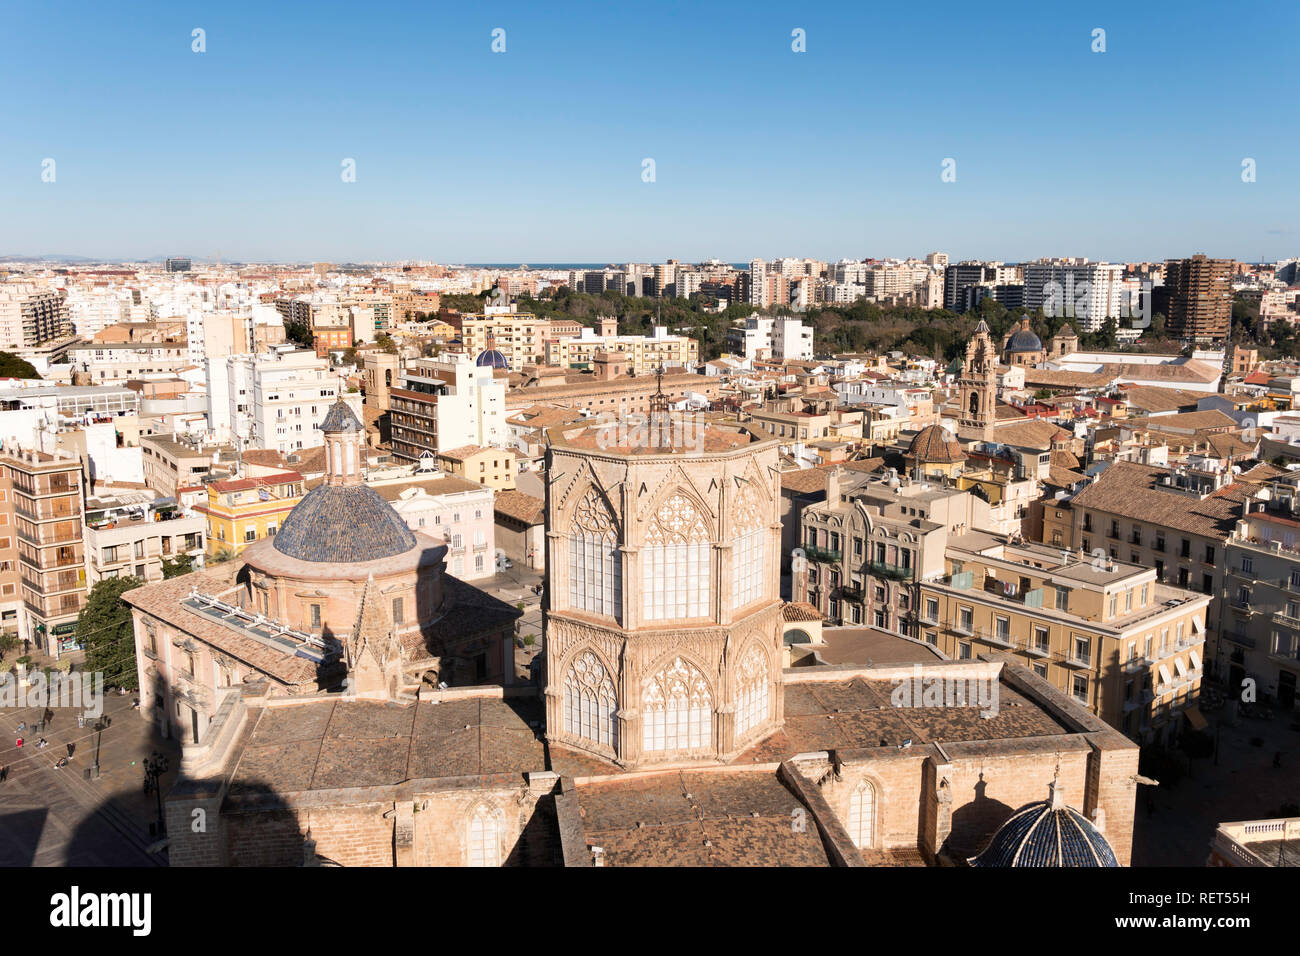 Looking down on Valencia cathedral from the top of the bell tower, Spain, Europe Stock Photo